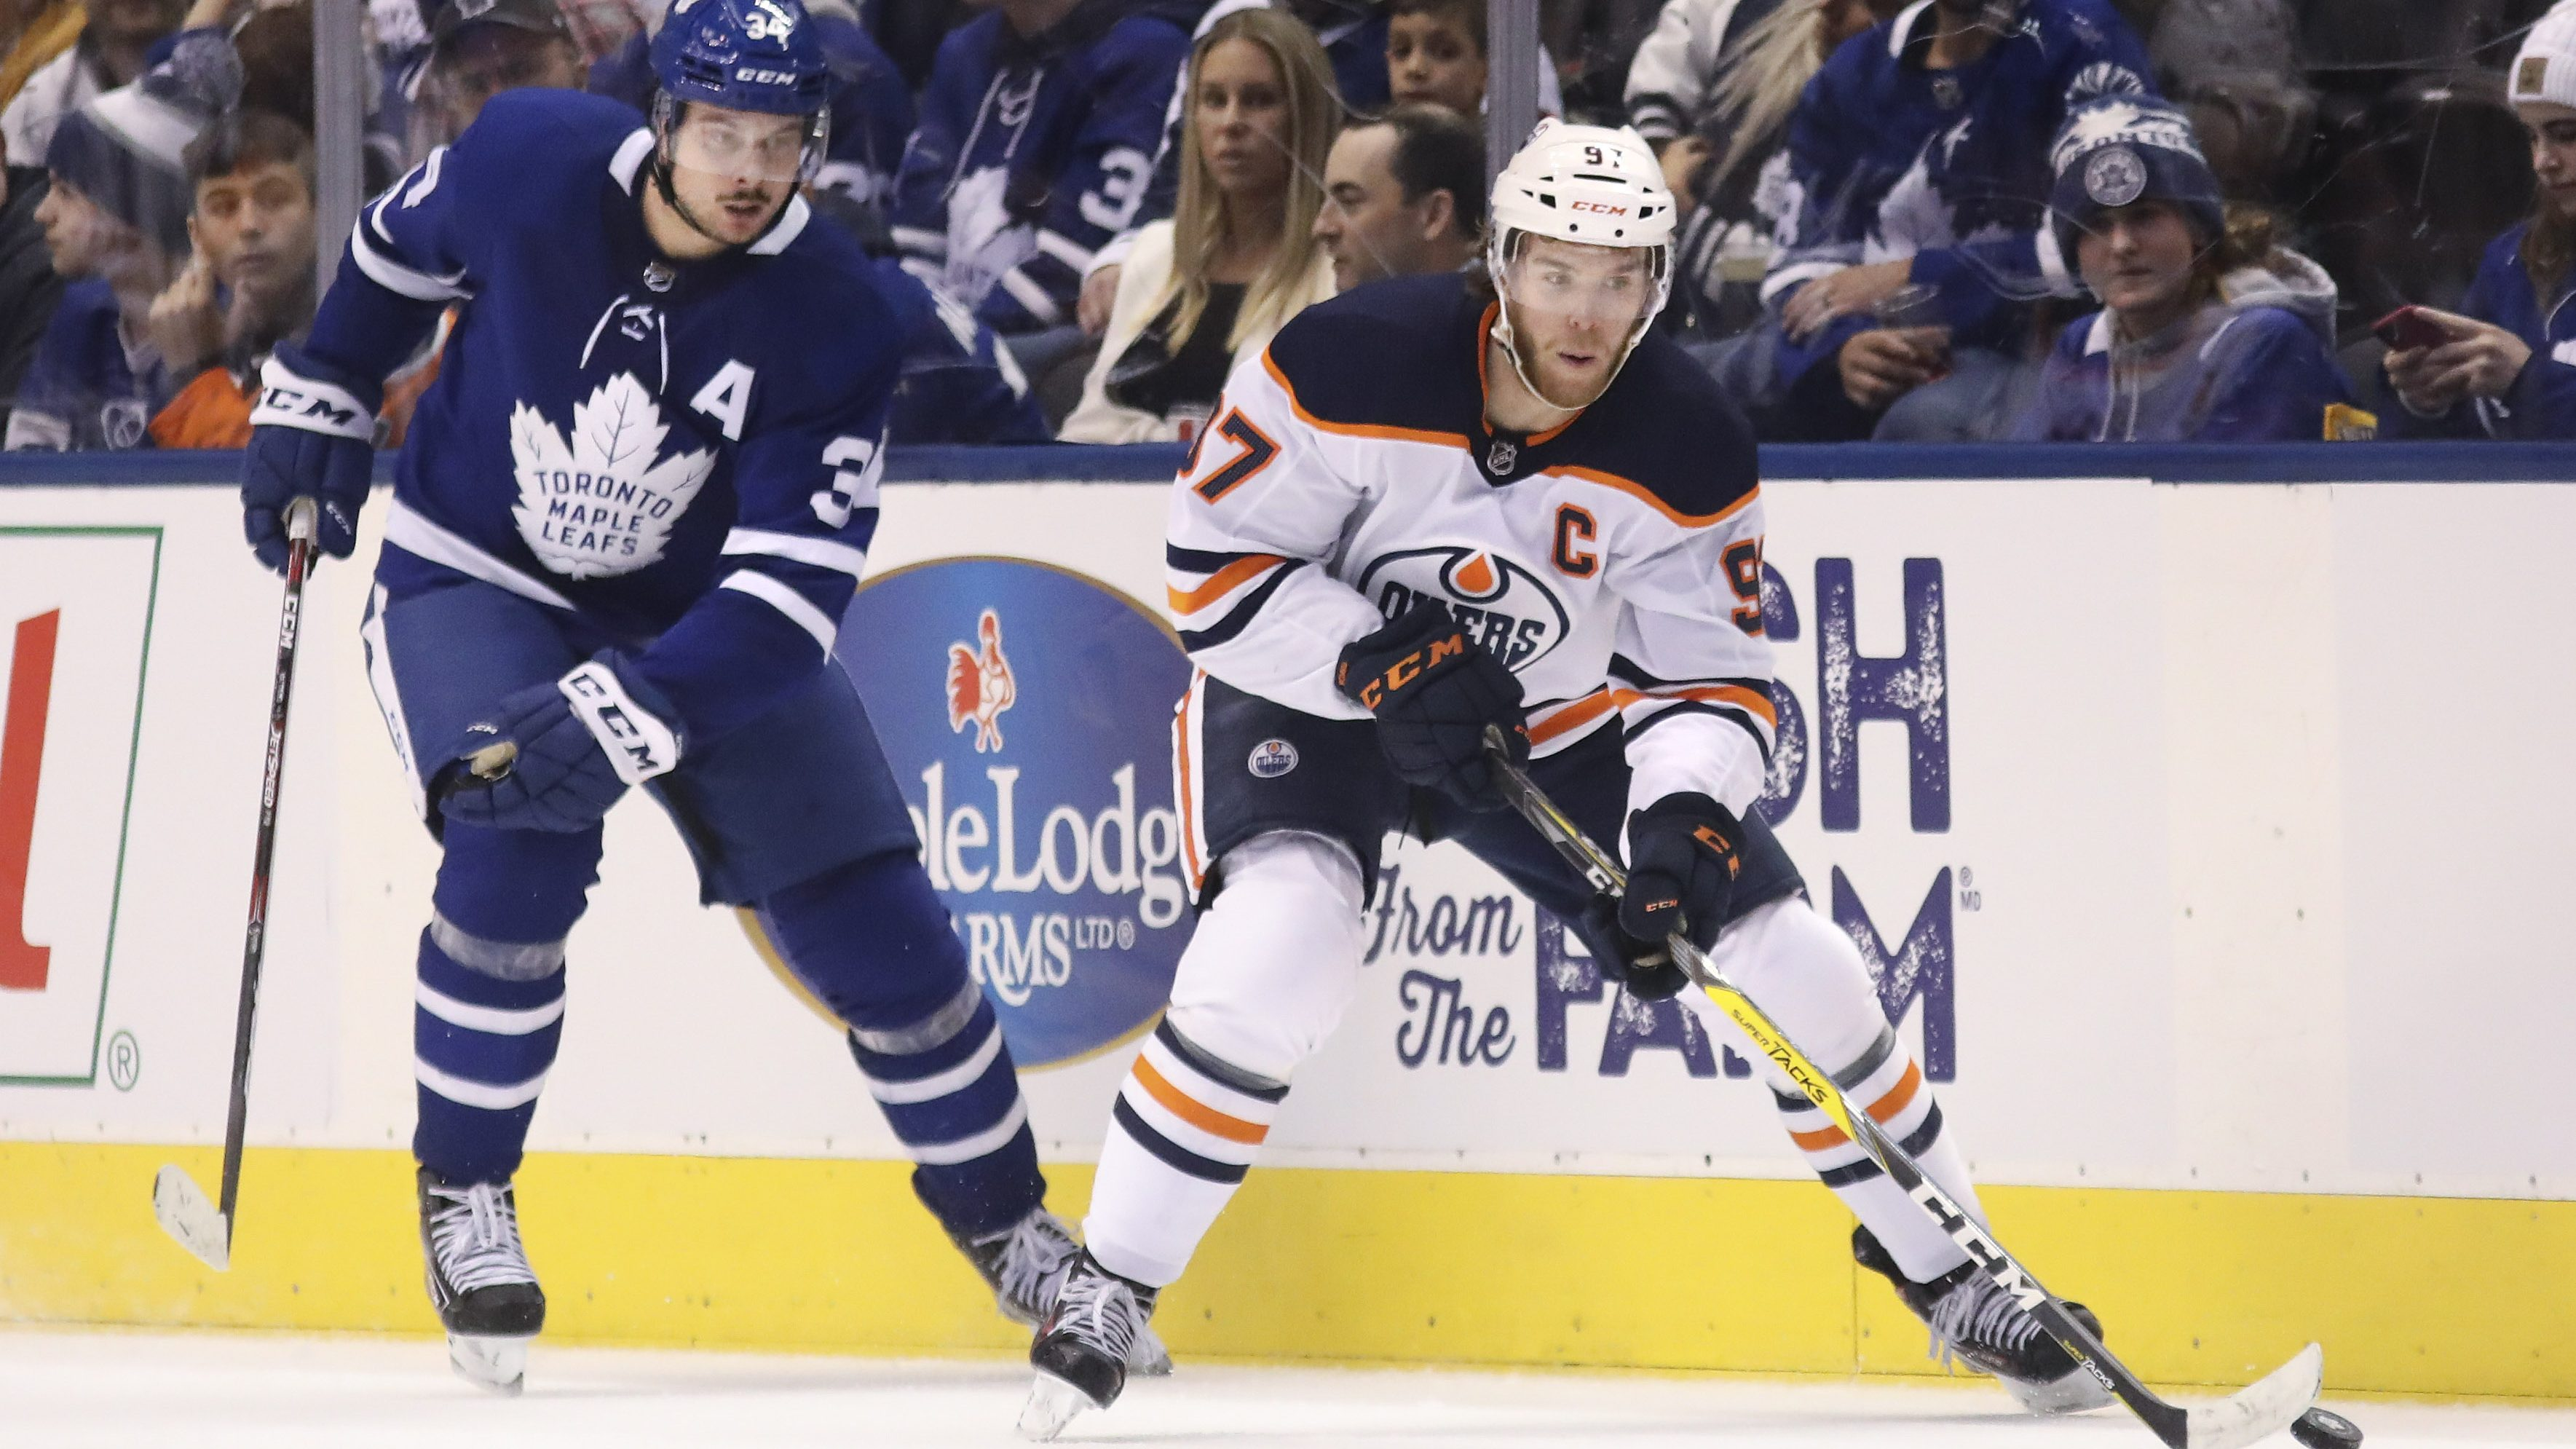 Oilers-Maple Leafs stream: How to watch Wednesday Night Hockey